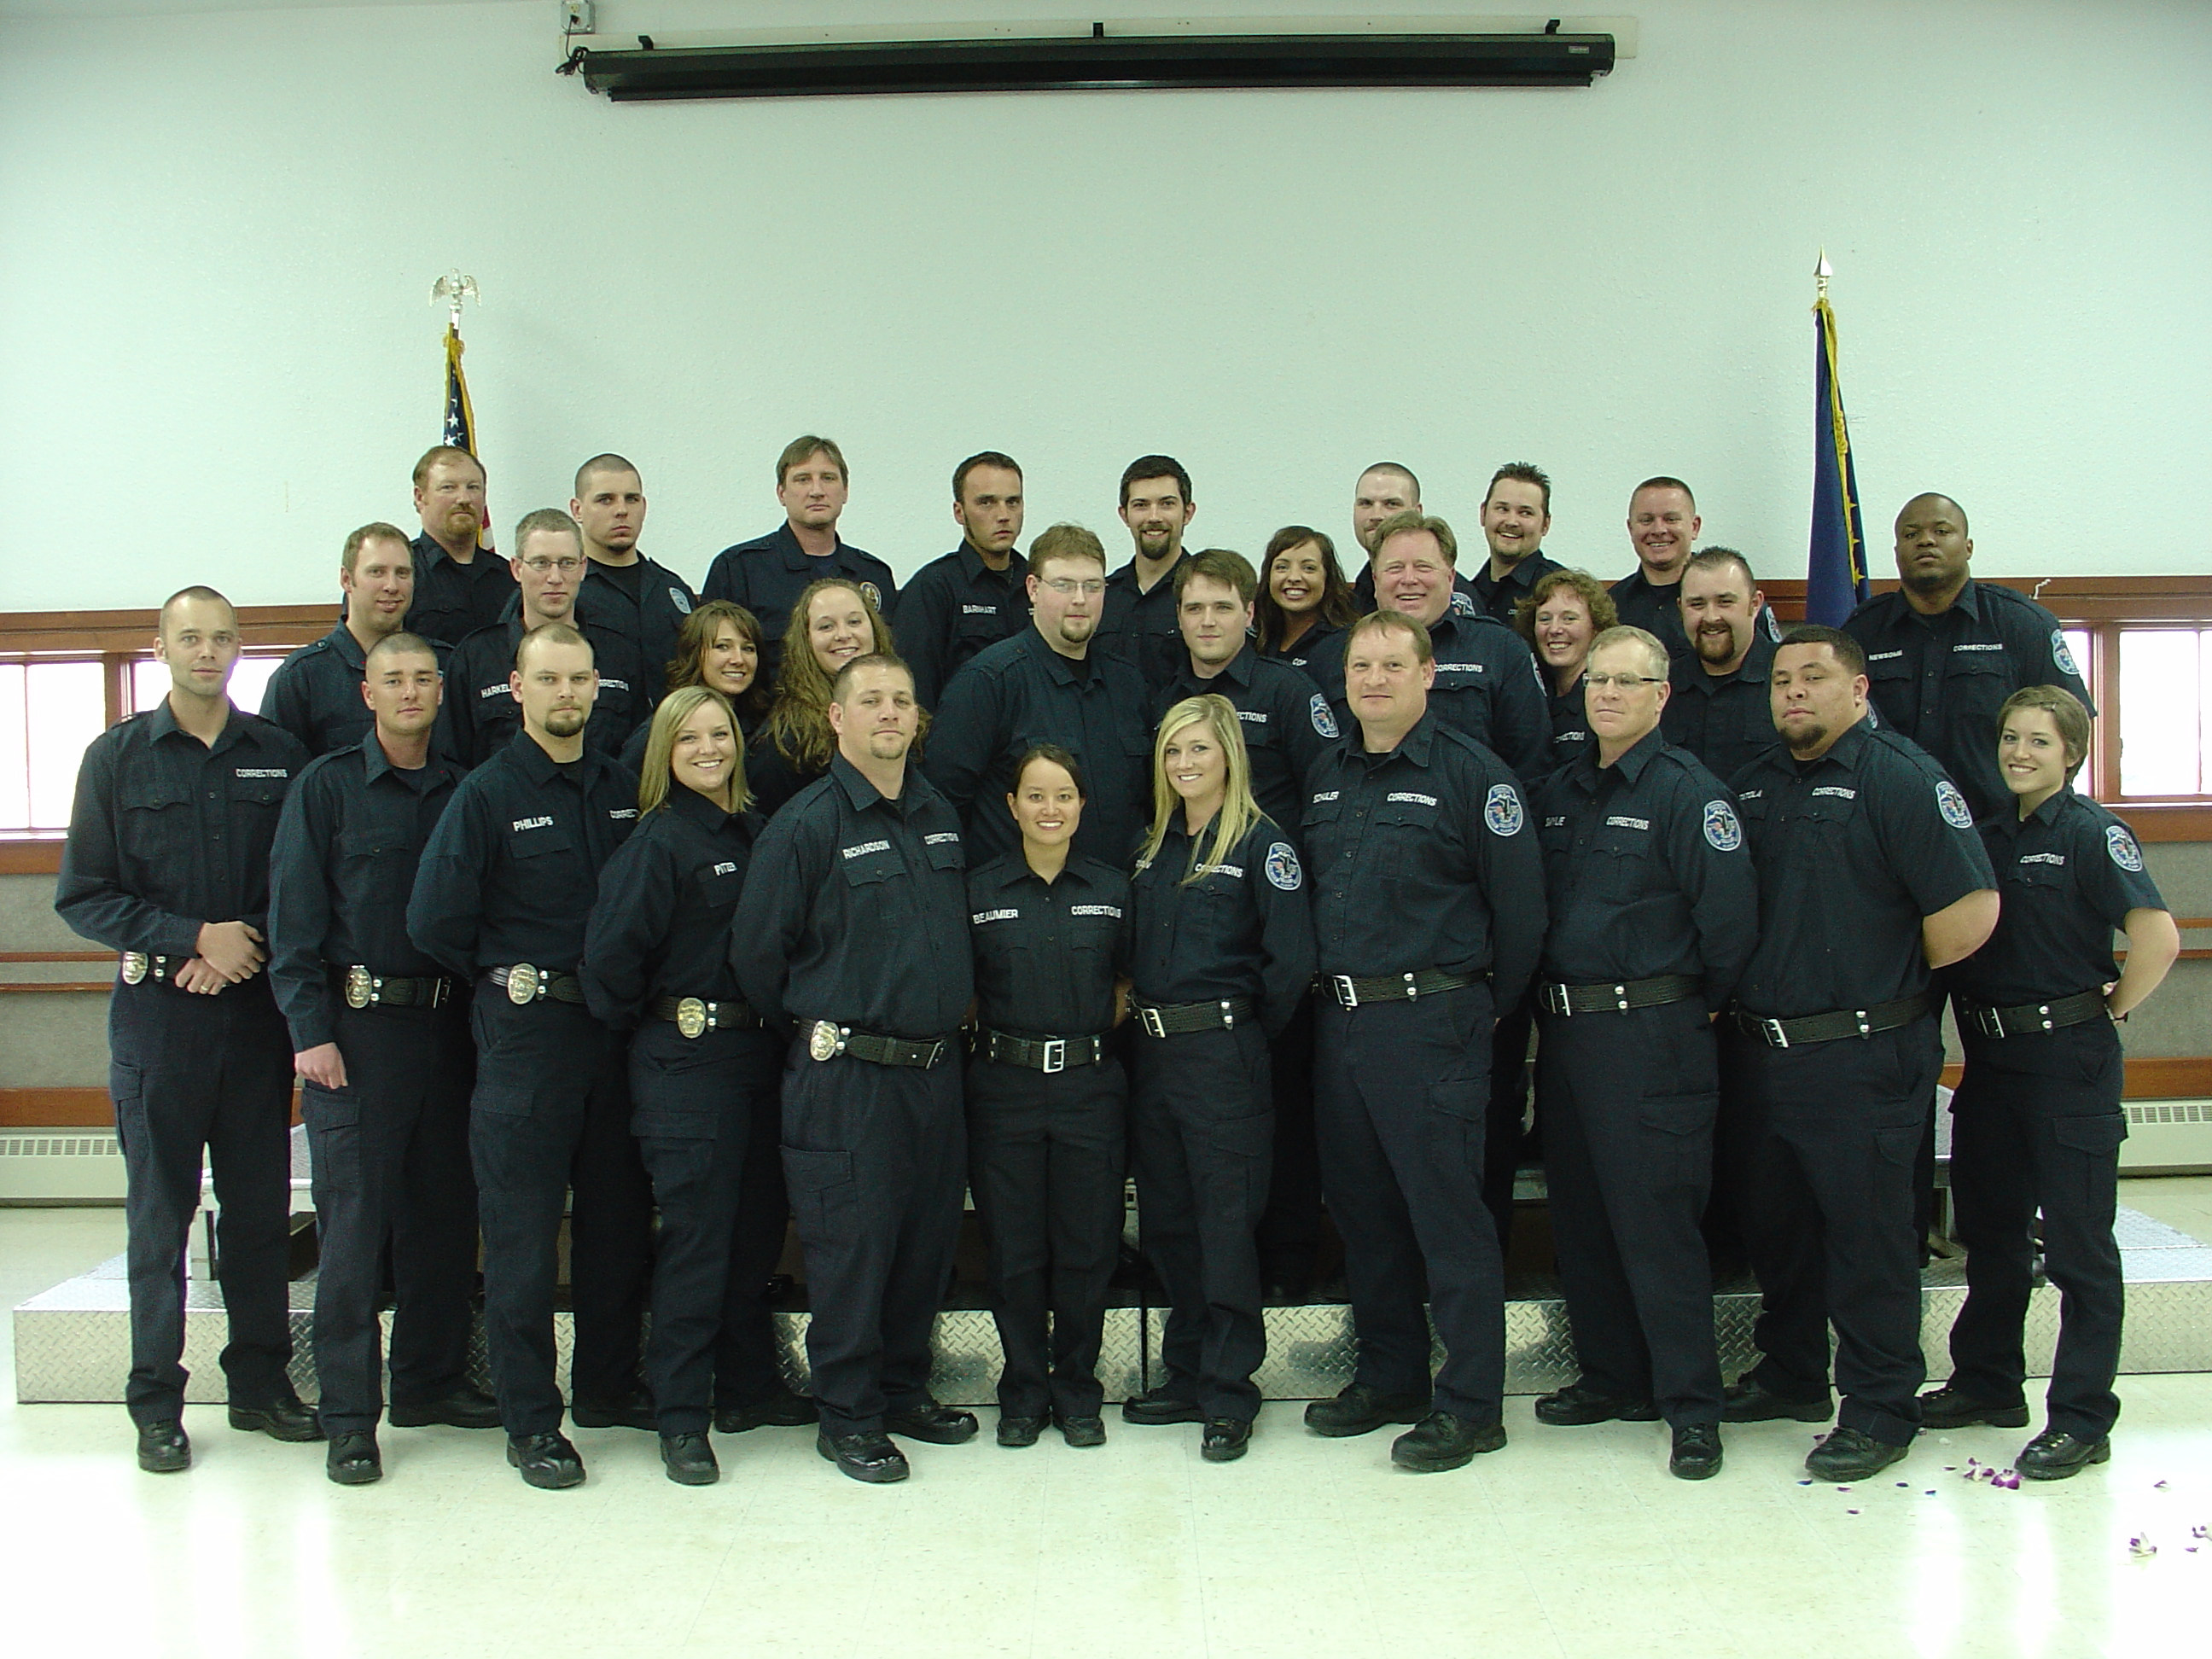 Roles of correctional officers